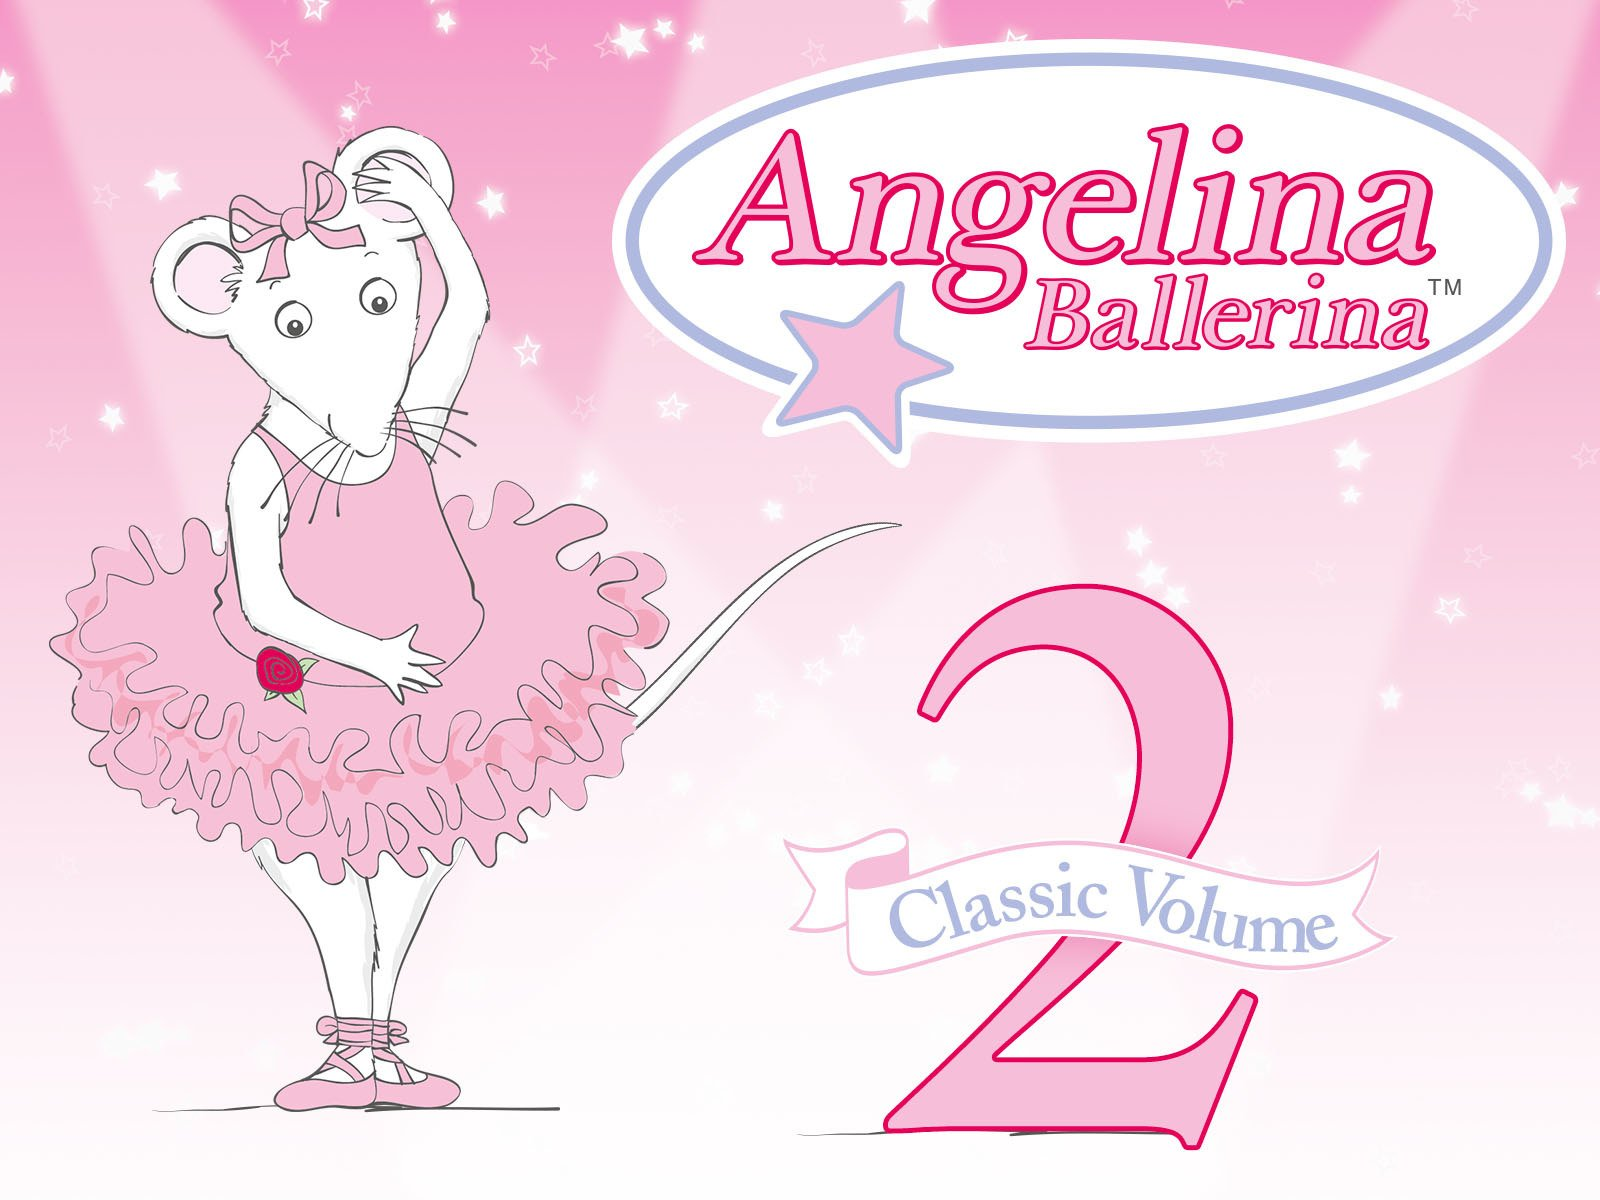 Amazon Angelina Ballerina Classic Volume 2 Finty Williams Judi Dench Jo Wyatt Keith Wickham Jonell Elliot Roger McIntosh Jan Page Mellie Buse